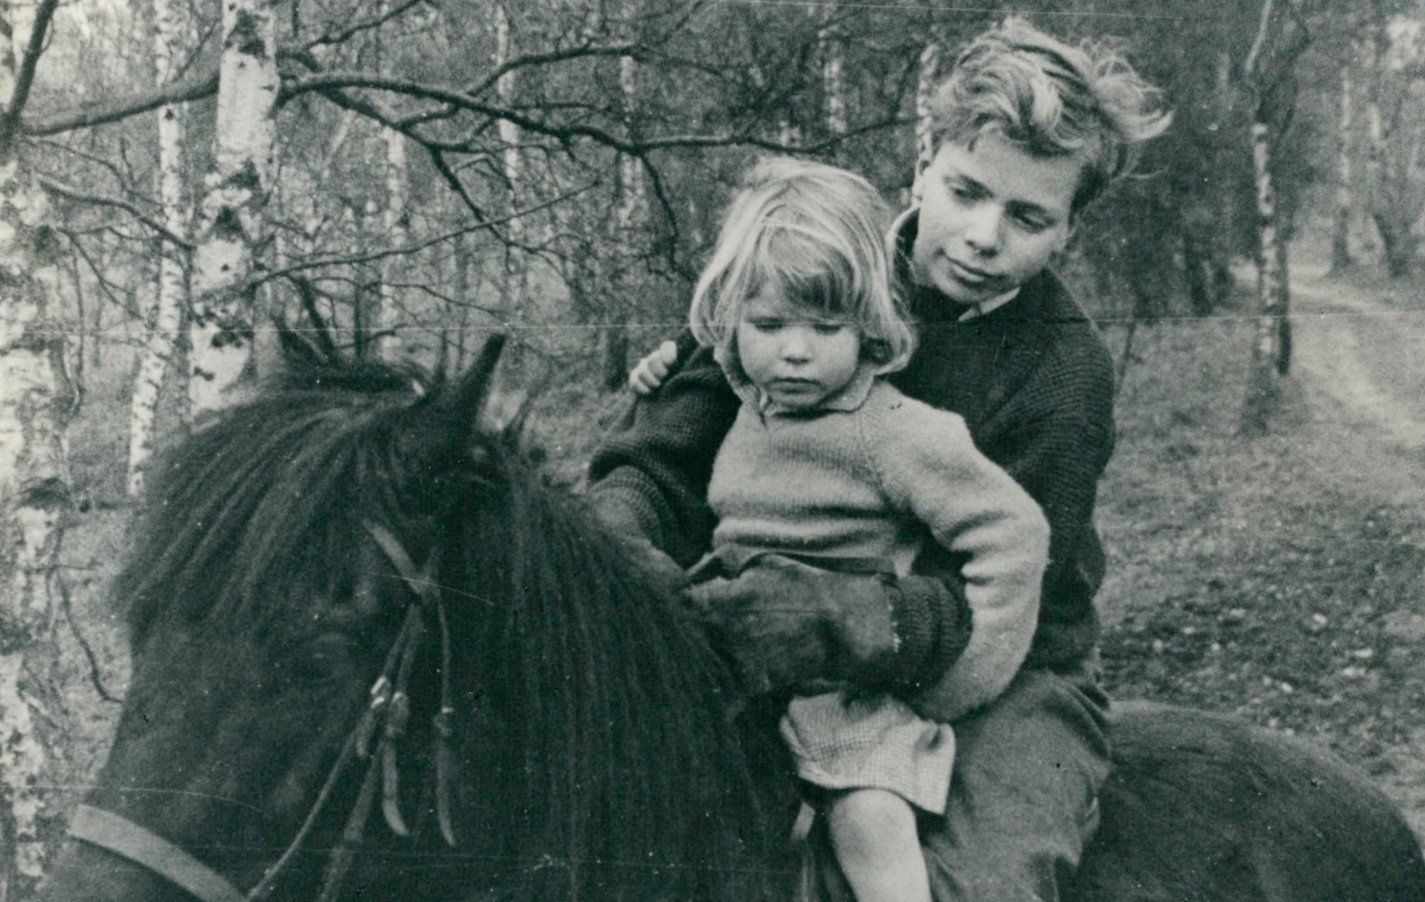 Young Richard Branson riding a horse with his sister